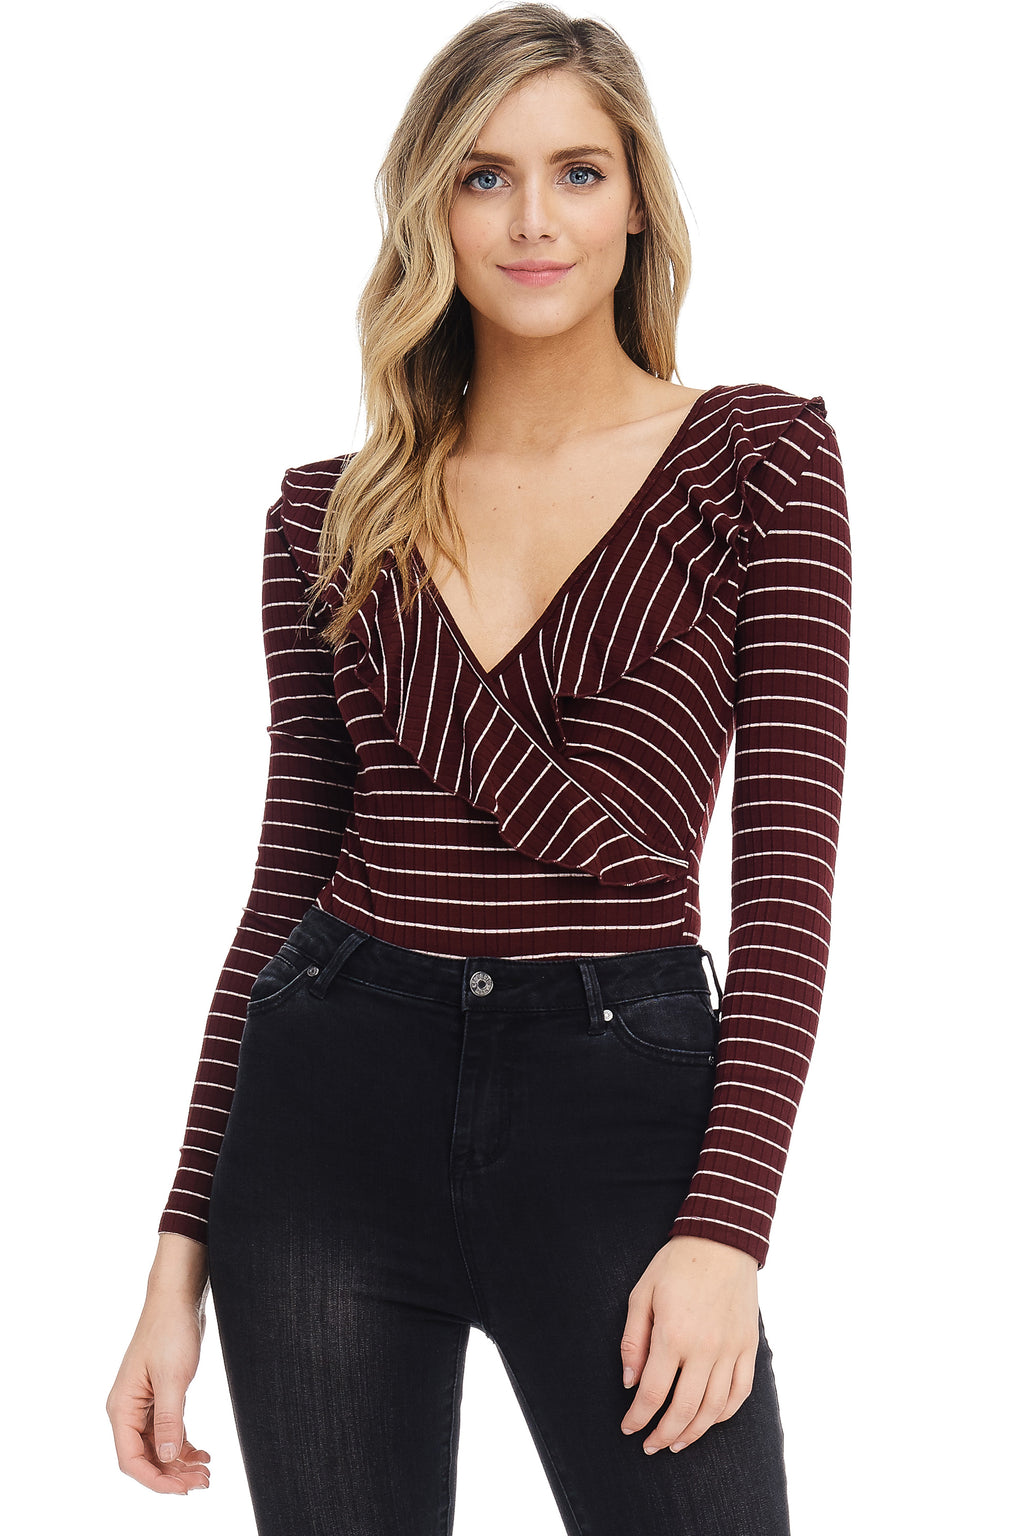 *Pre-Order* W18-193 Striped Surplice Bodysuit